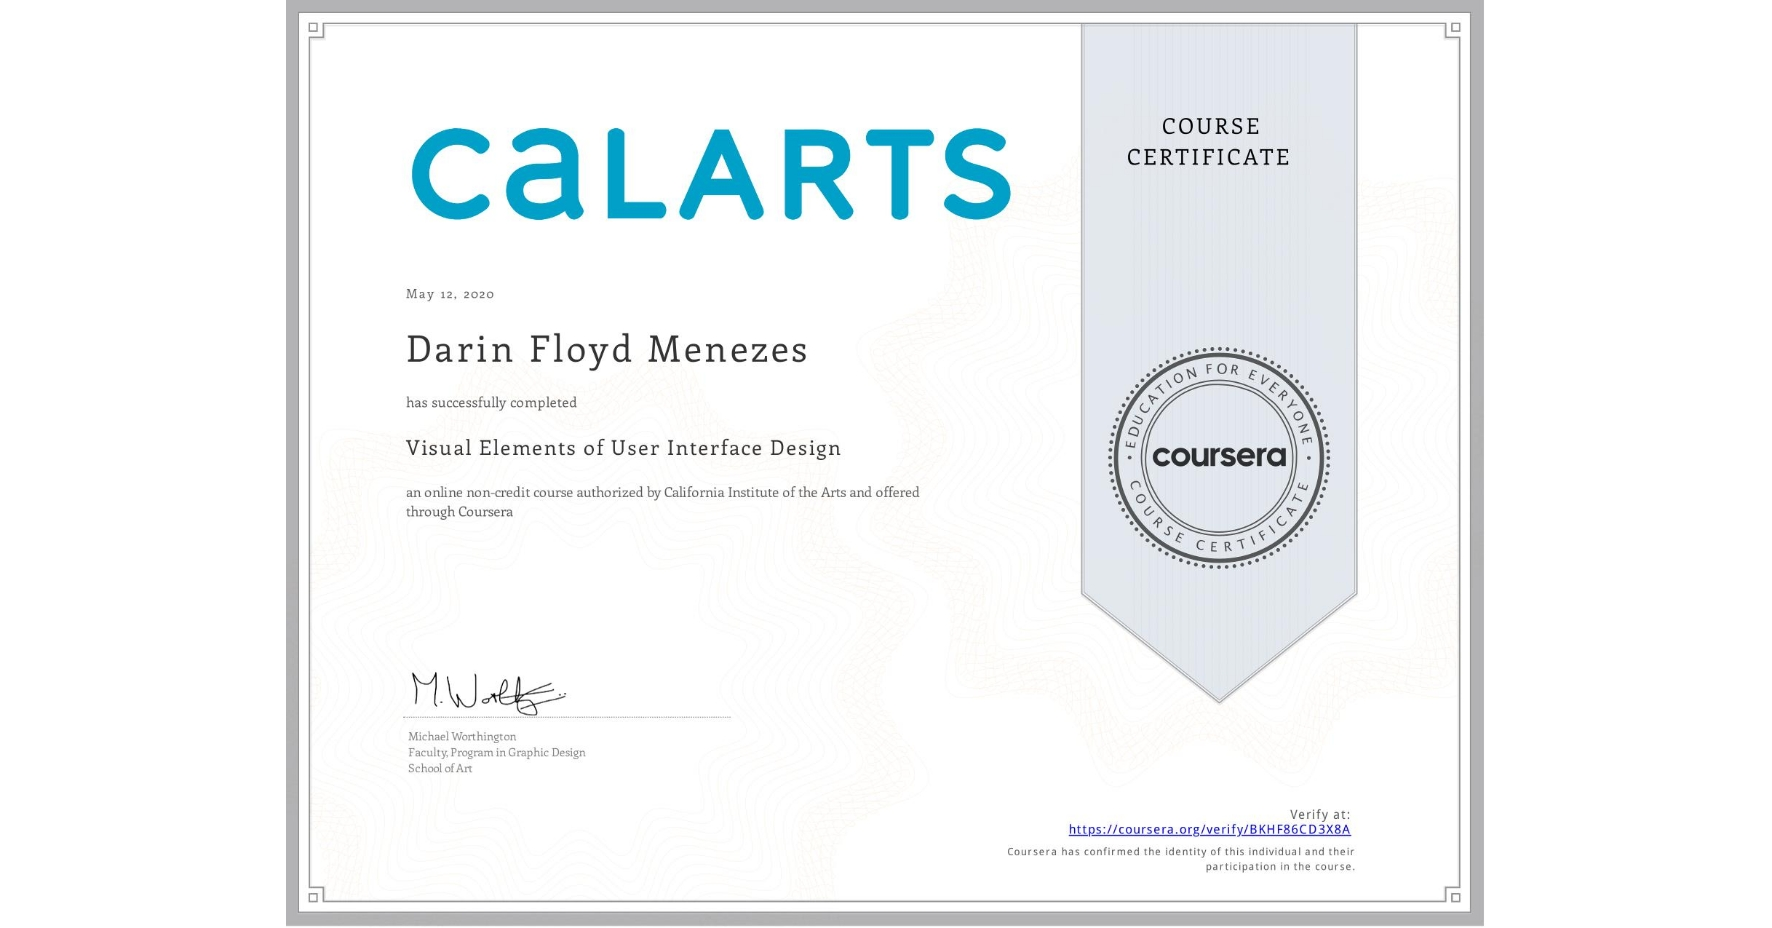 View certificate for Darin Floyd Menezes, Visual Elements of User Interface Design, an online non-credit course authorized by California Institute of the Arts and offered through Coursera